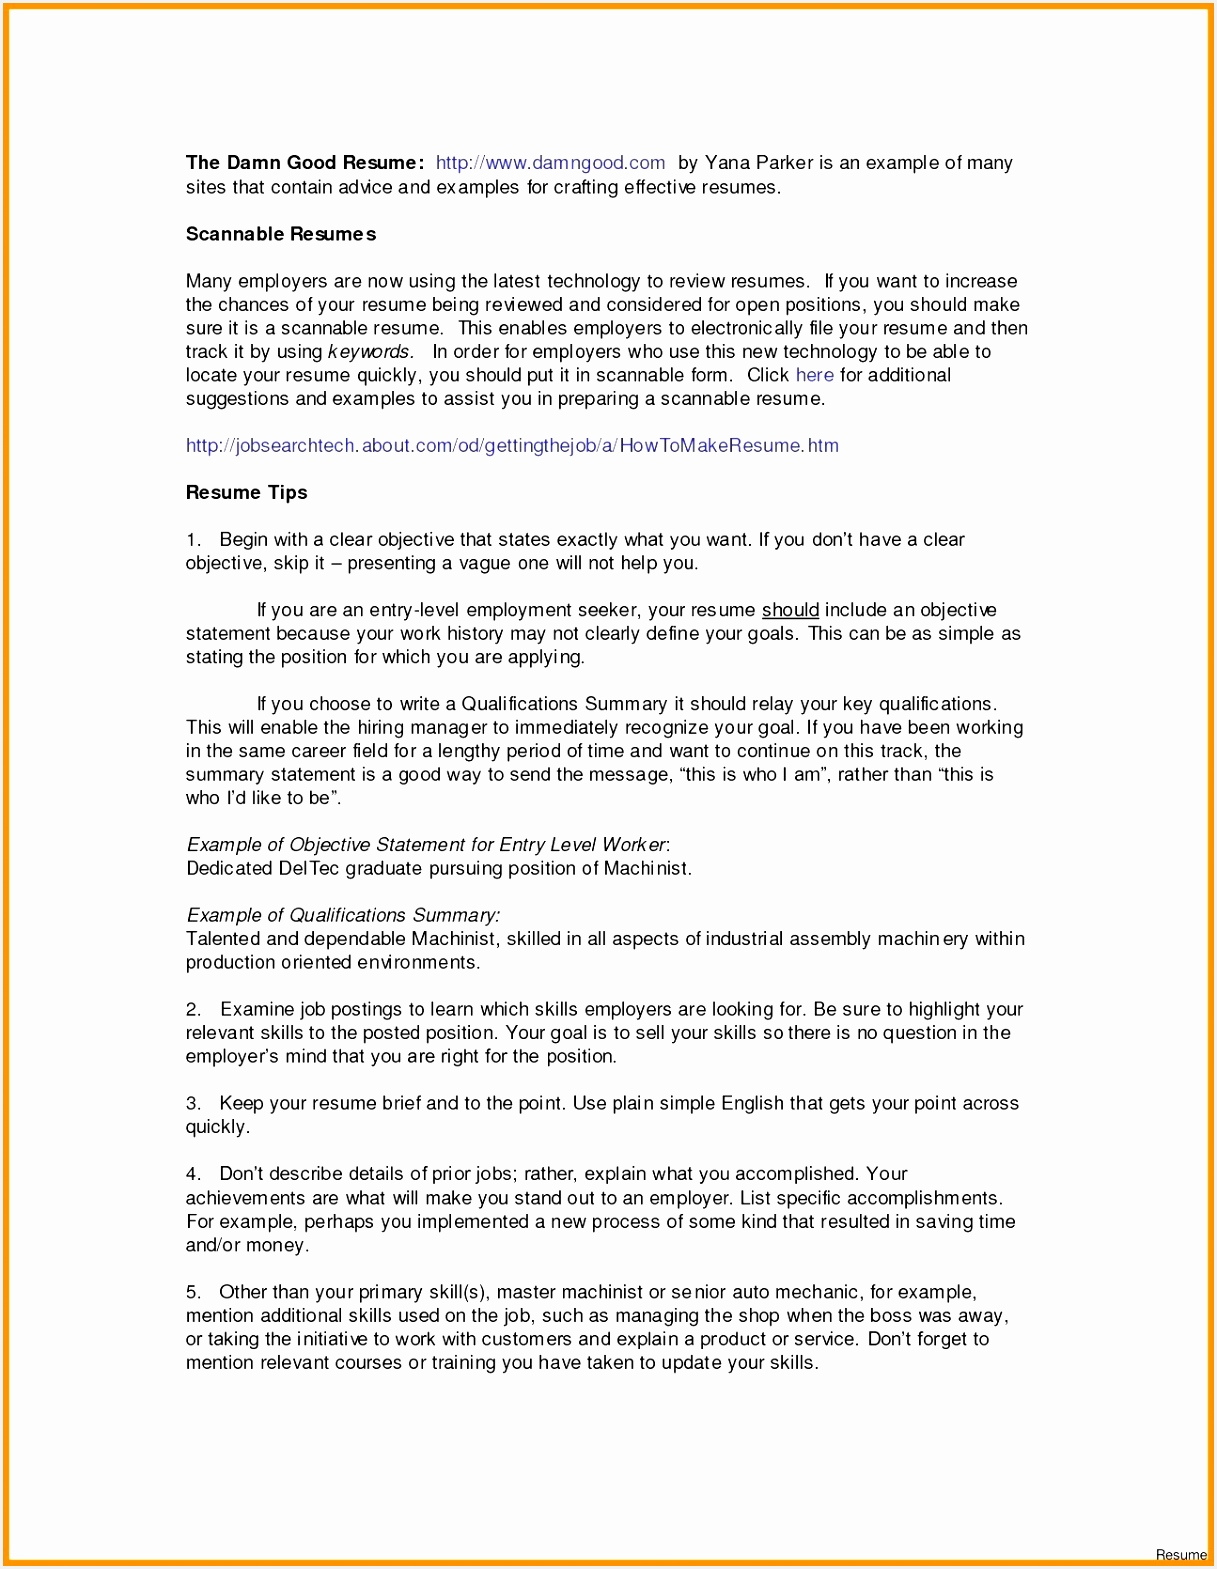 Standard Resume Example Z3gfh Unique Standard Resume Template New Resume Paper Sample Tickets Templates Of 5 Standard Resume Example